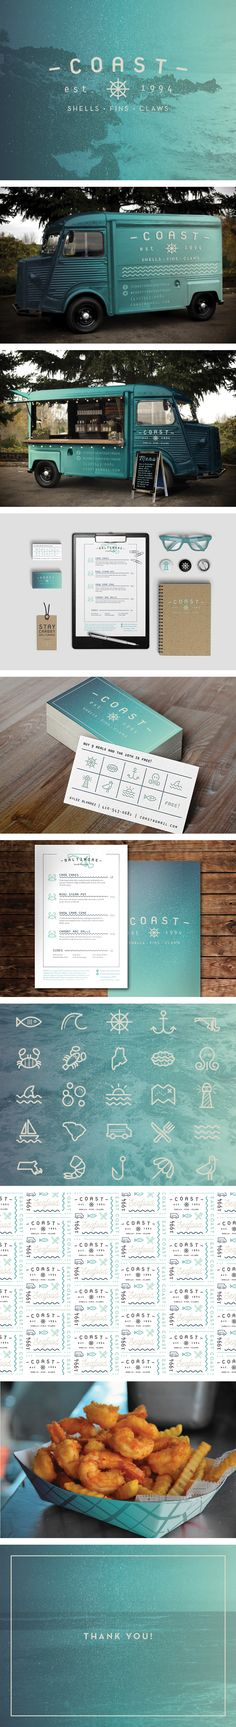 Coast Food Truck via Behance